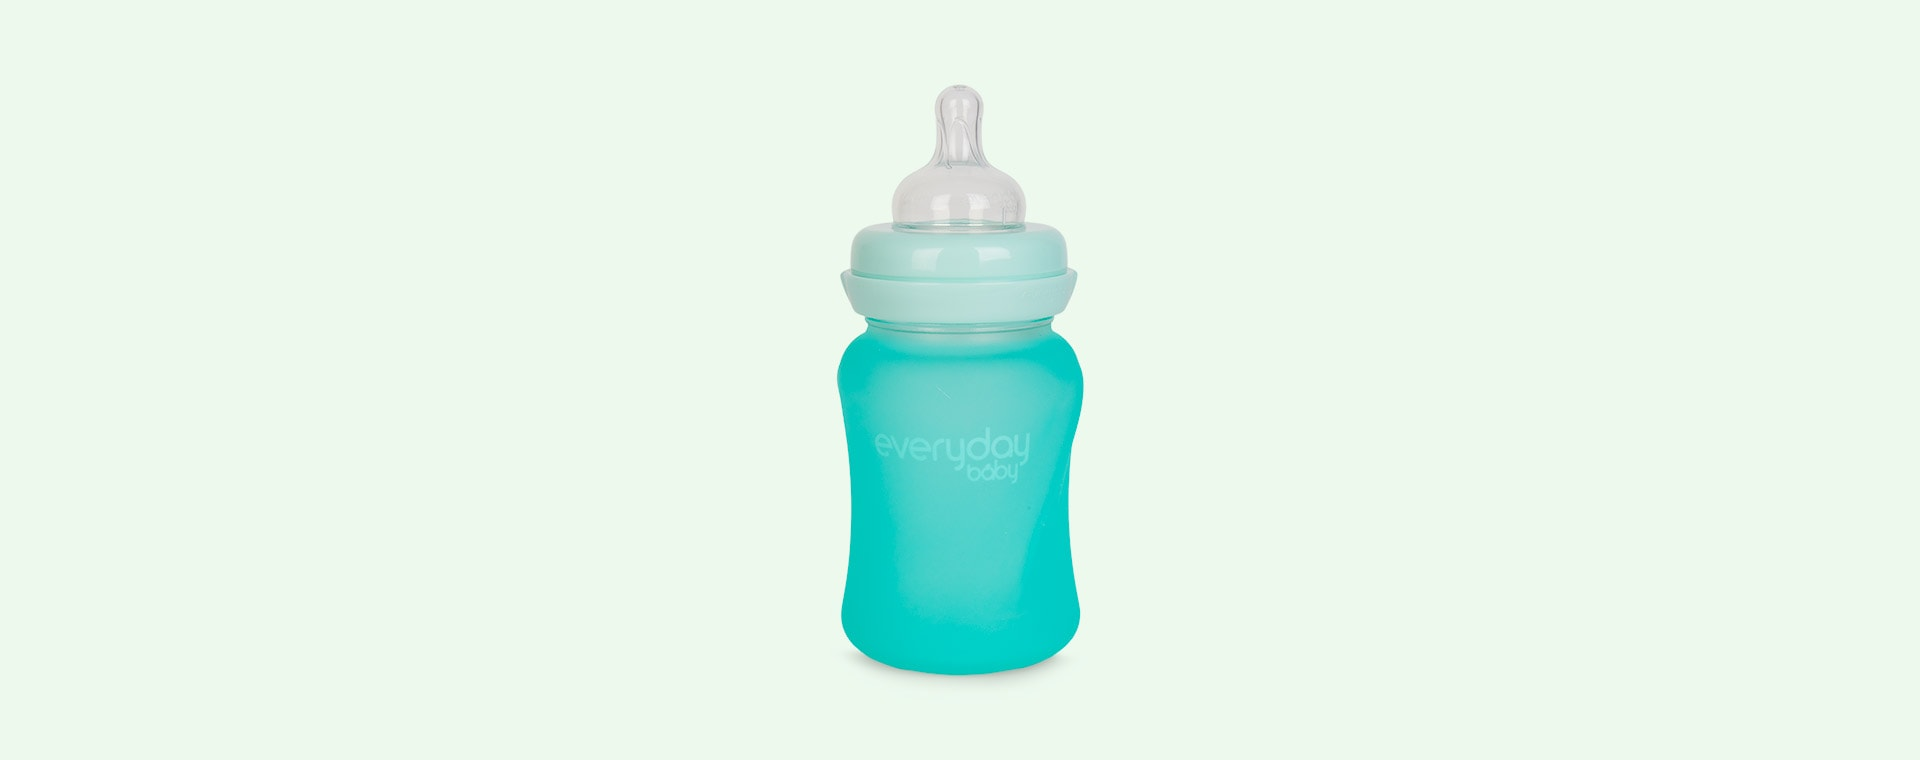 Mint Green Everyday Baby Glass Baby Bottle 150ml